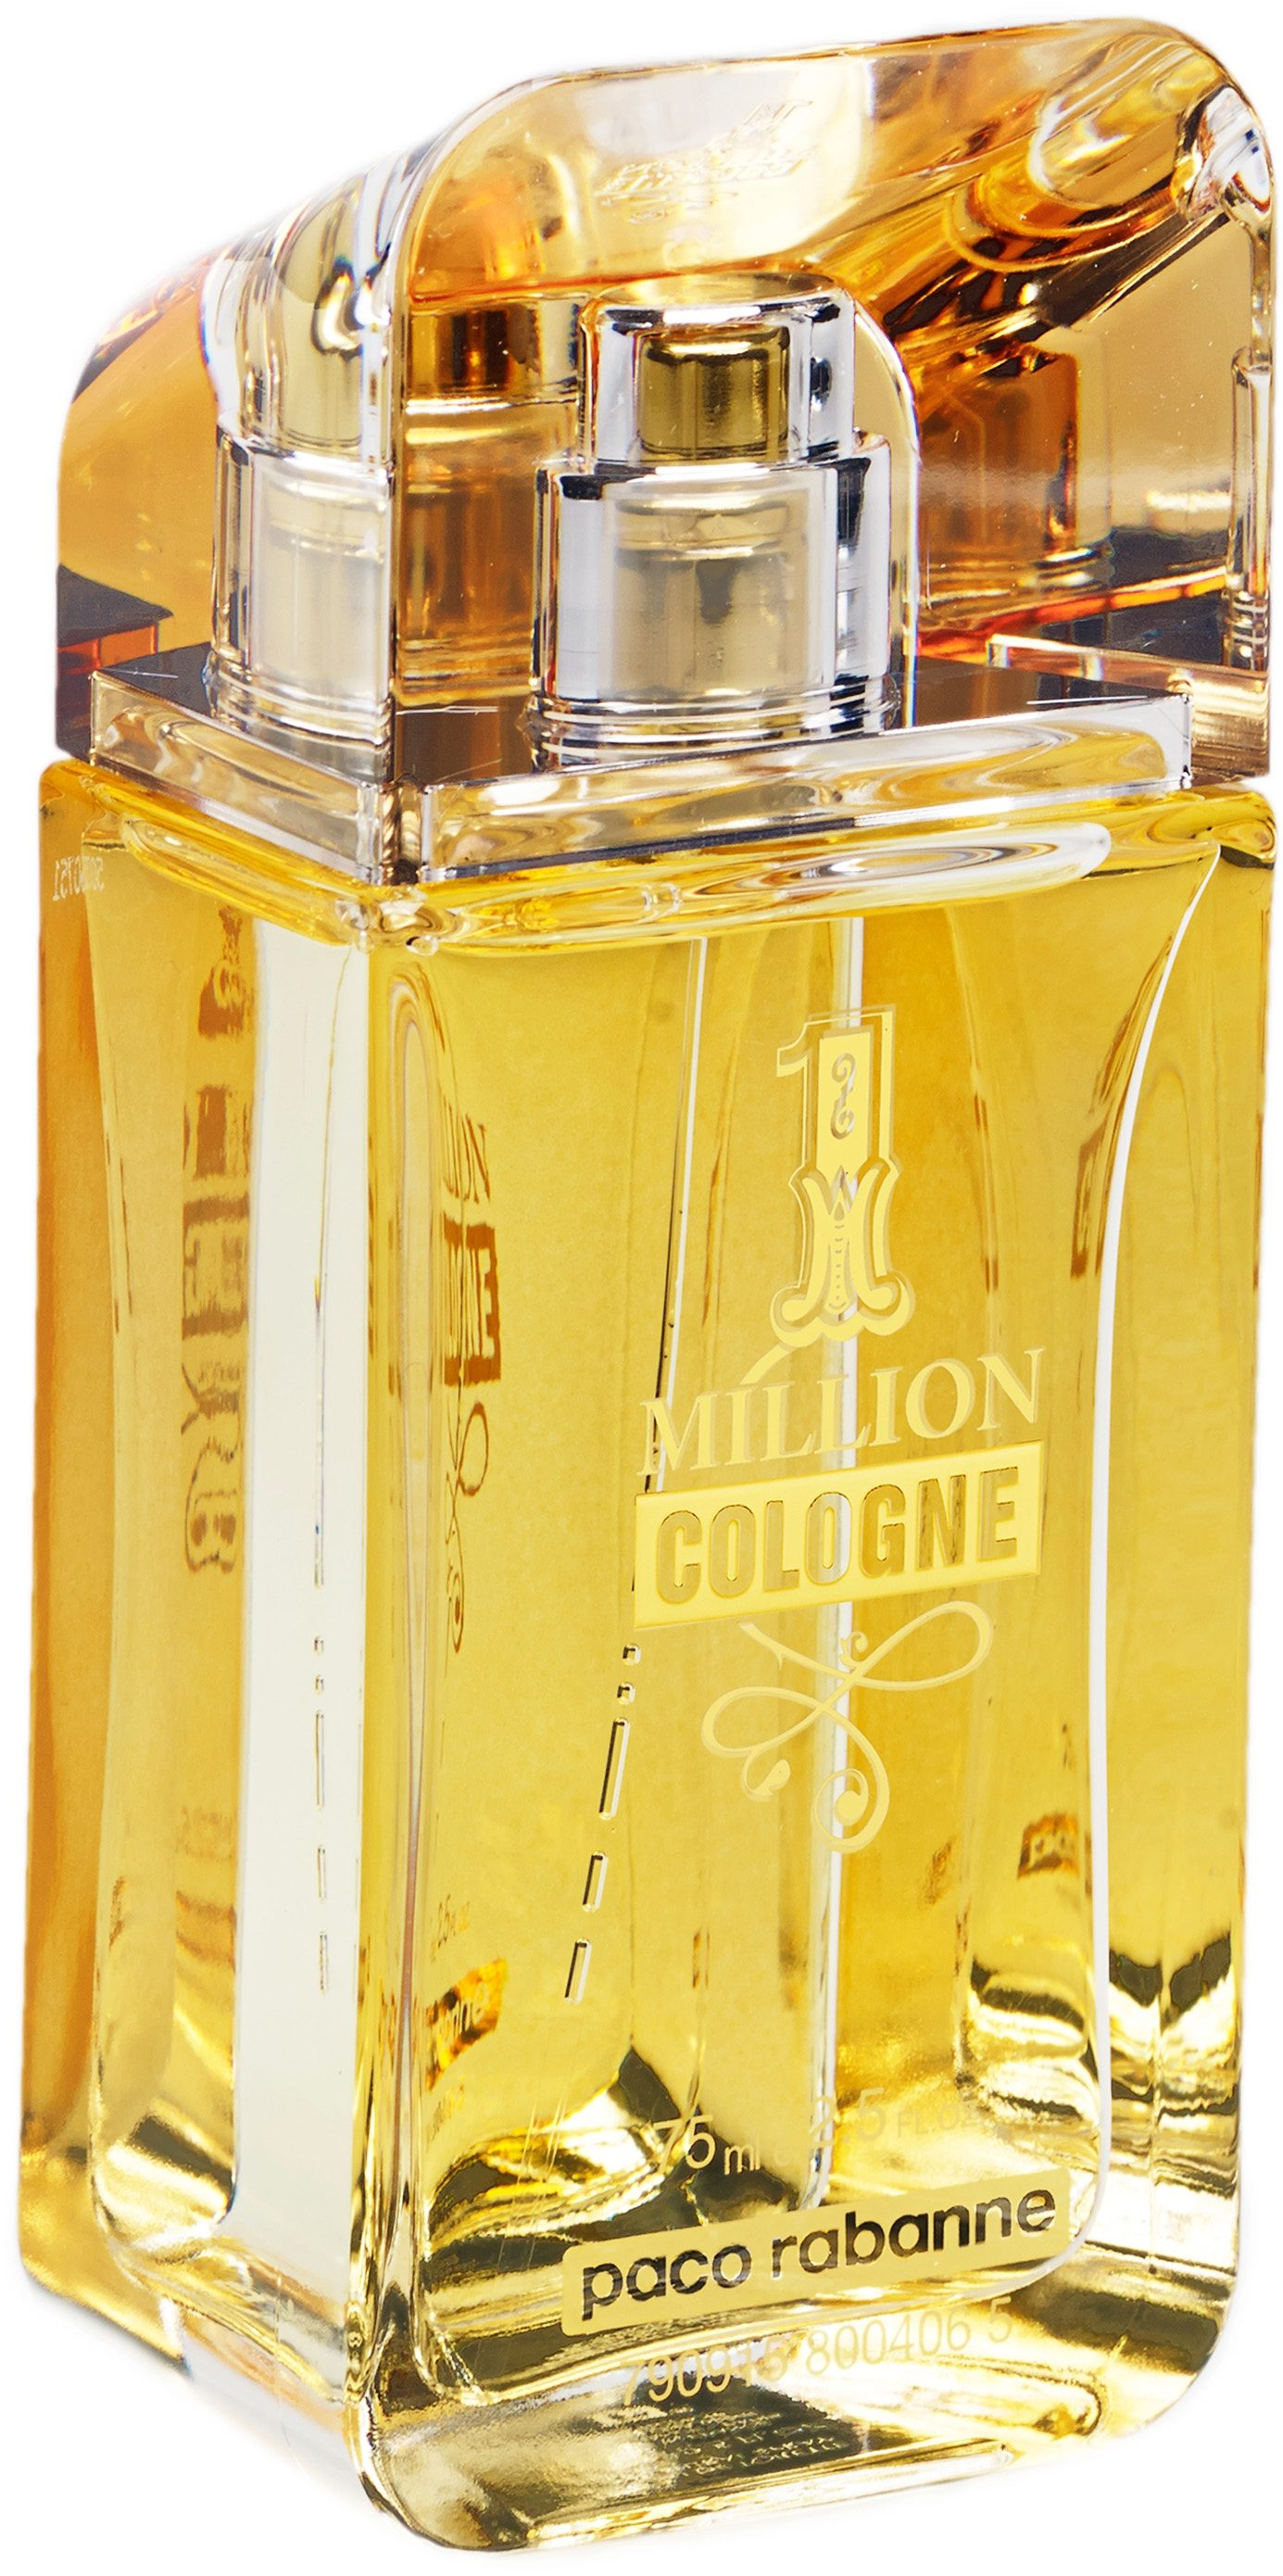 Paco Rabanne, »One Million Cologne«, Eau de Toilette